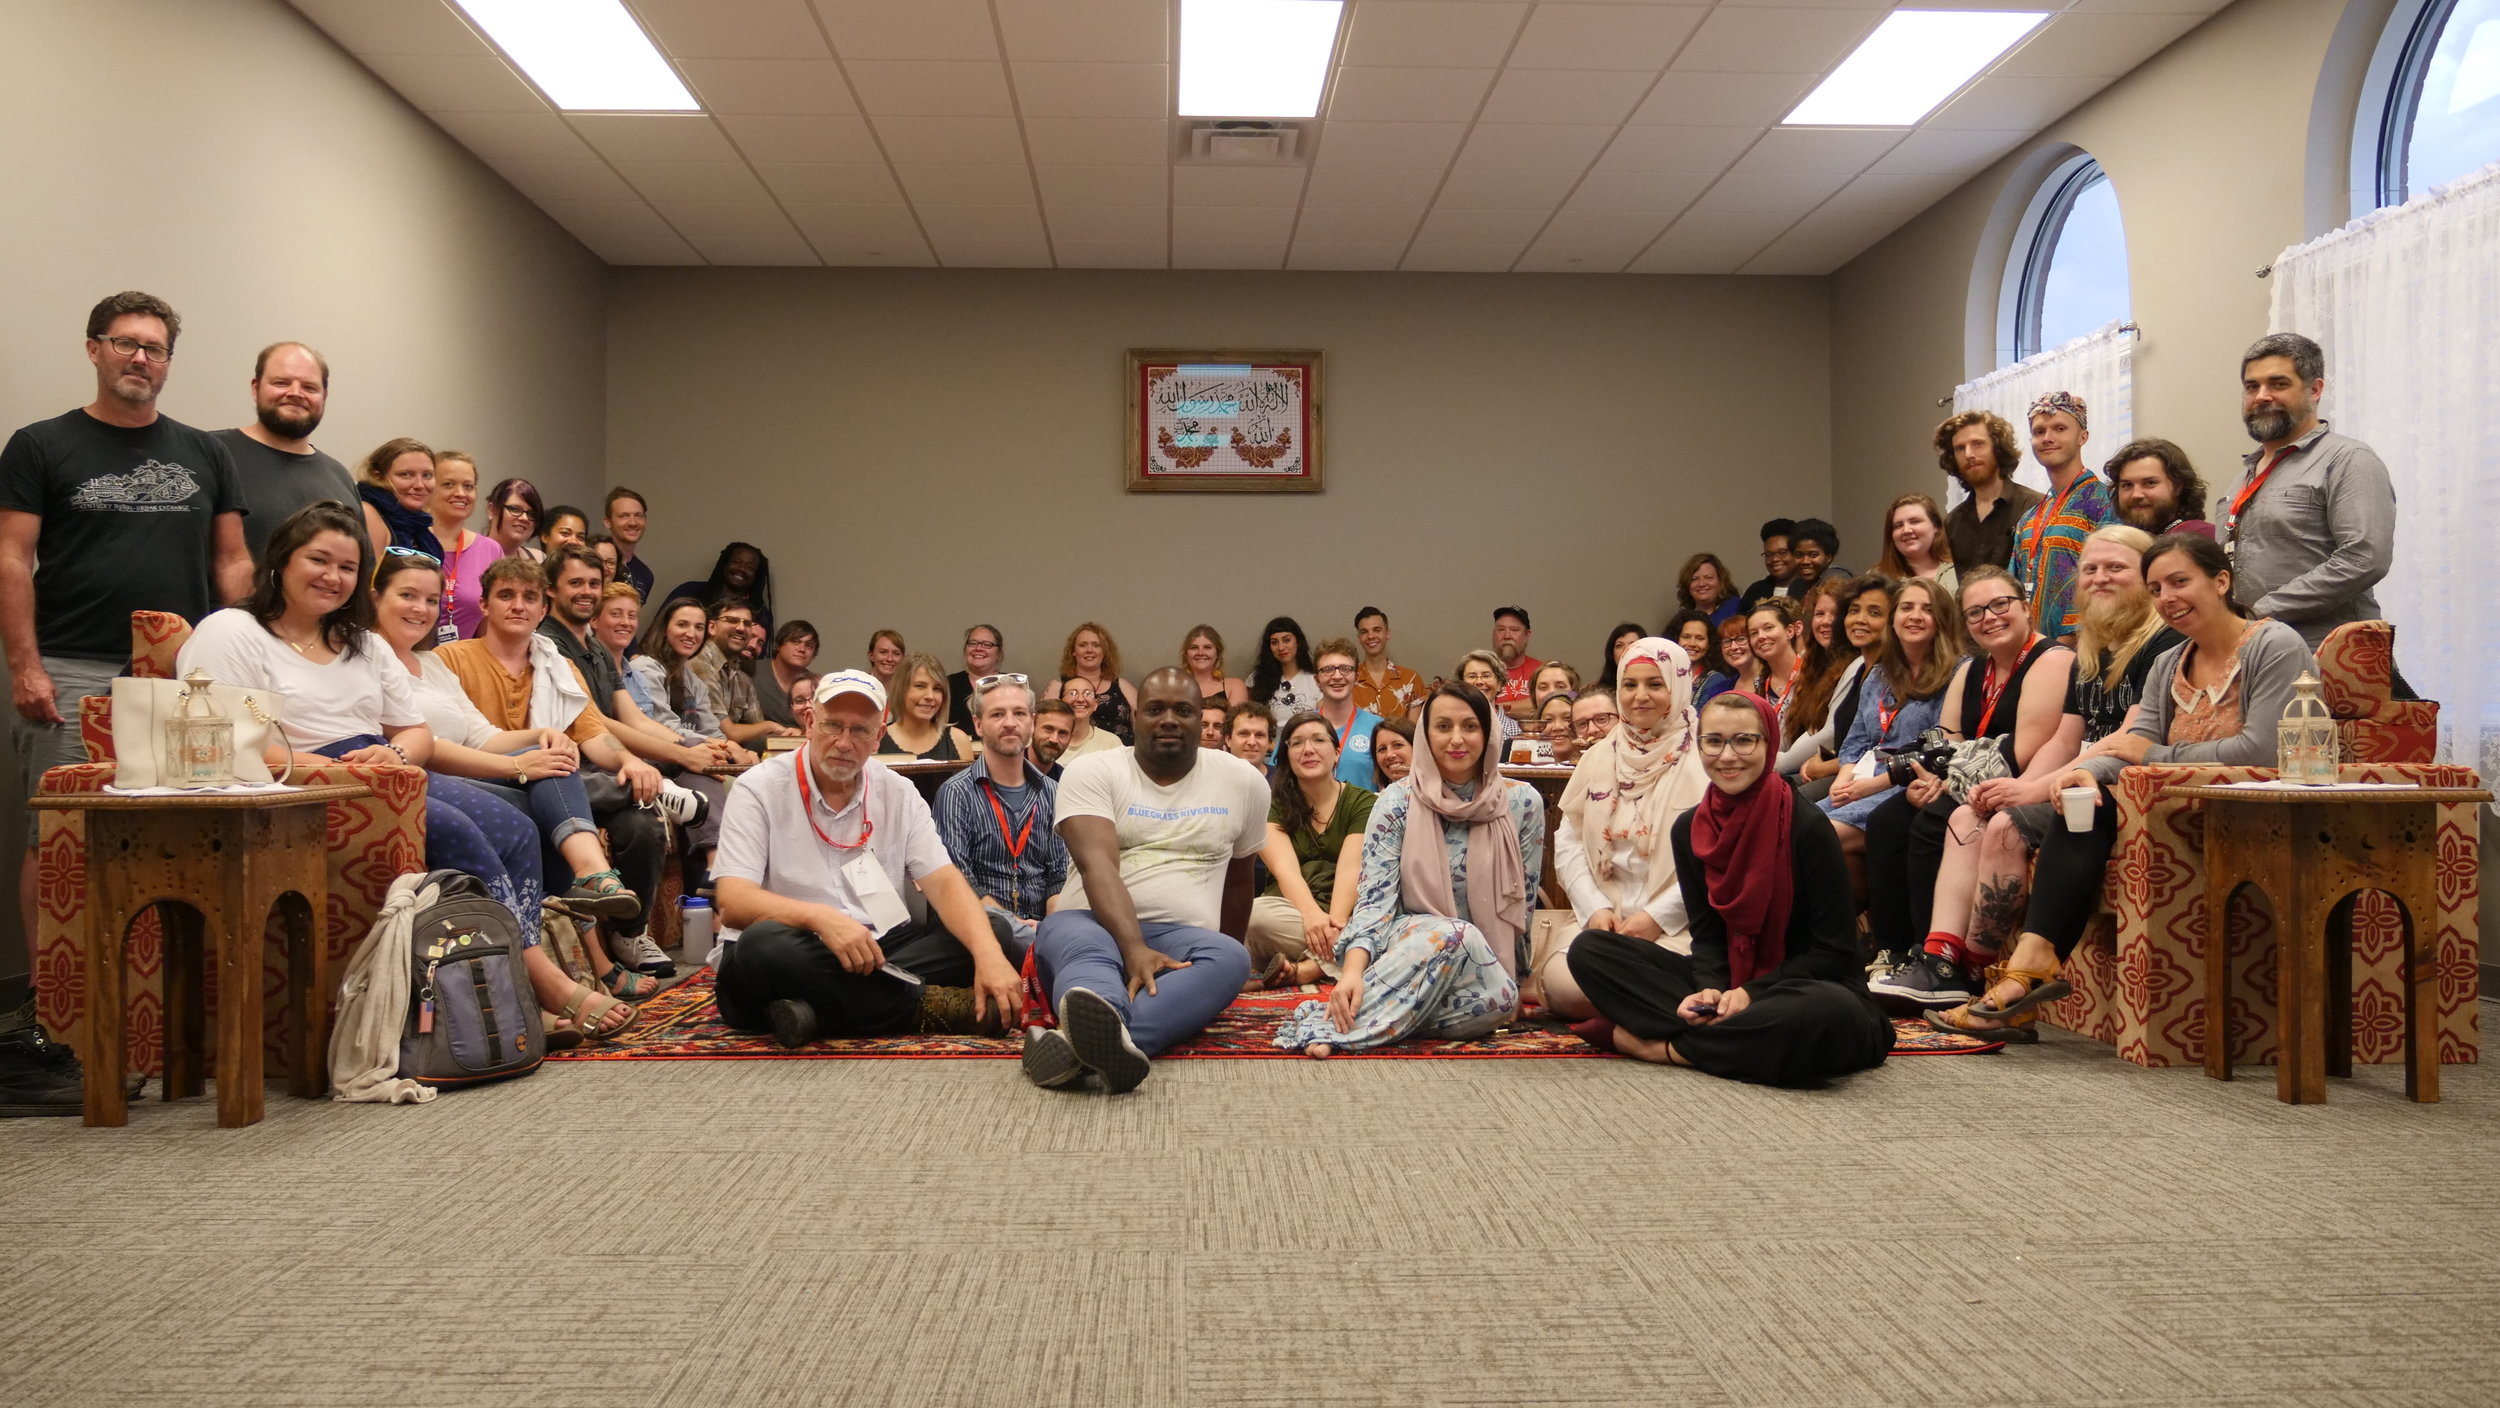 The RUX 2018 cohort snaps a group photo at the Bosnian Islamic Center during the Cave Country Community Intensive.